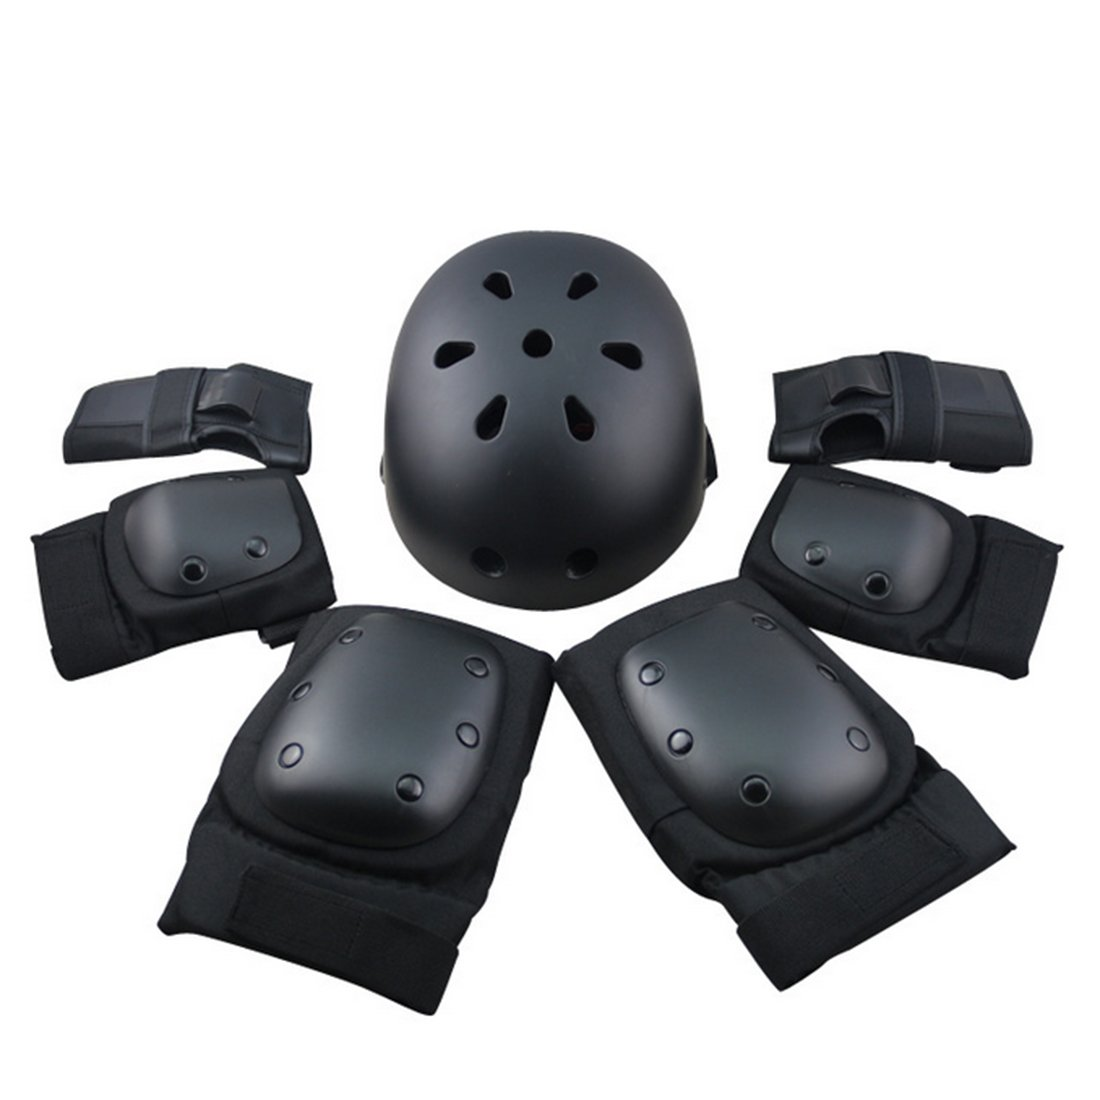 FenglinTech Protective Gear, 7Pcs Set Sport Safety Protective Gear Elbow Wrist Knee Pads and Helmet Guard for Skating Riding - Black